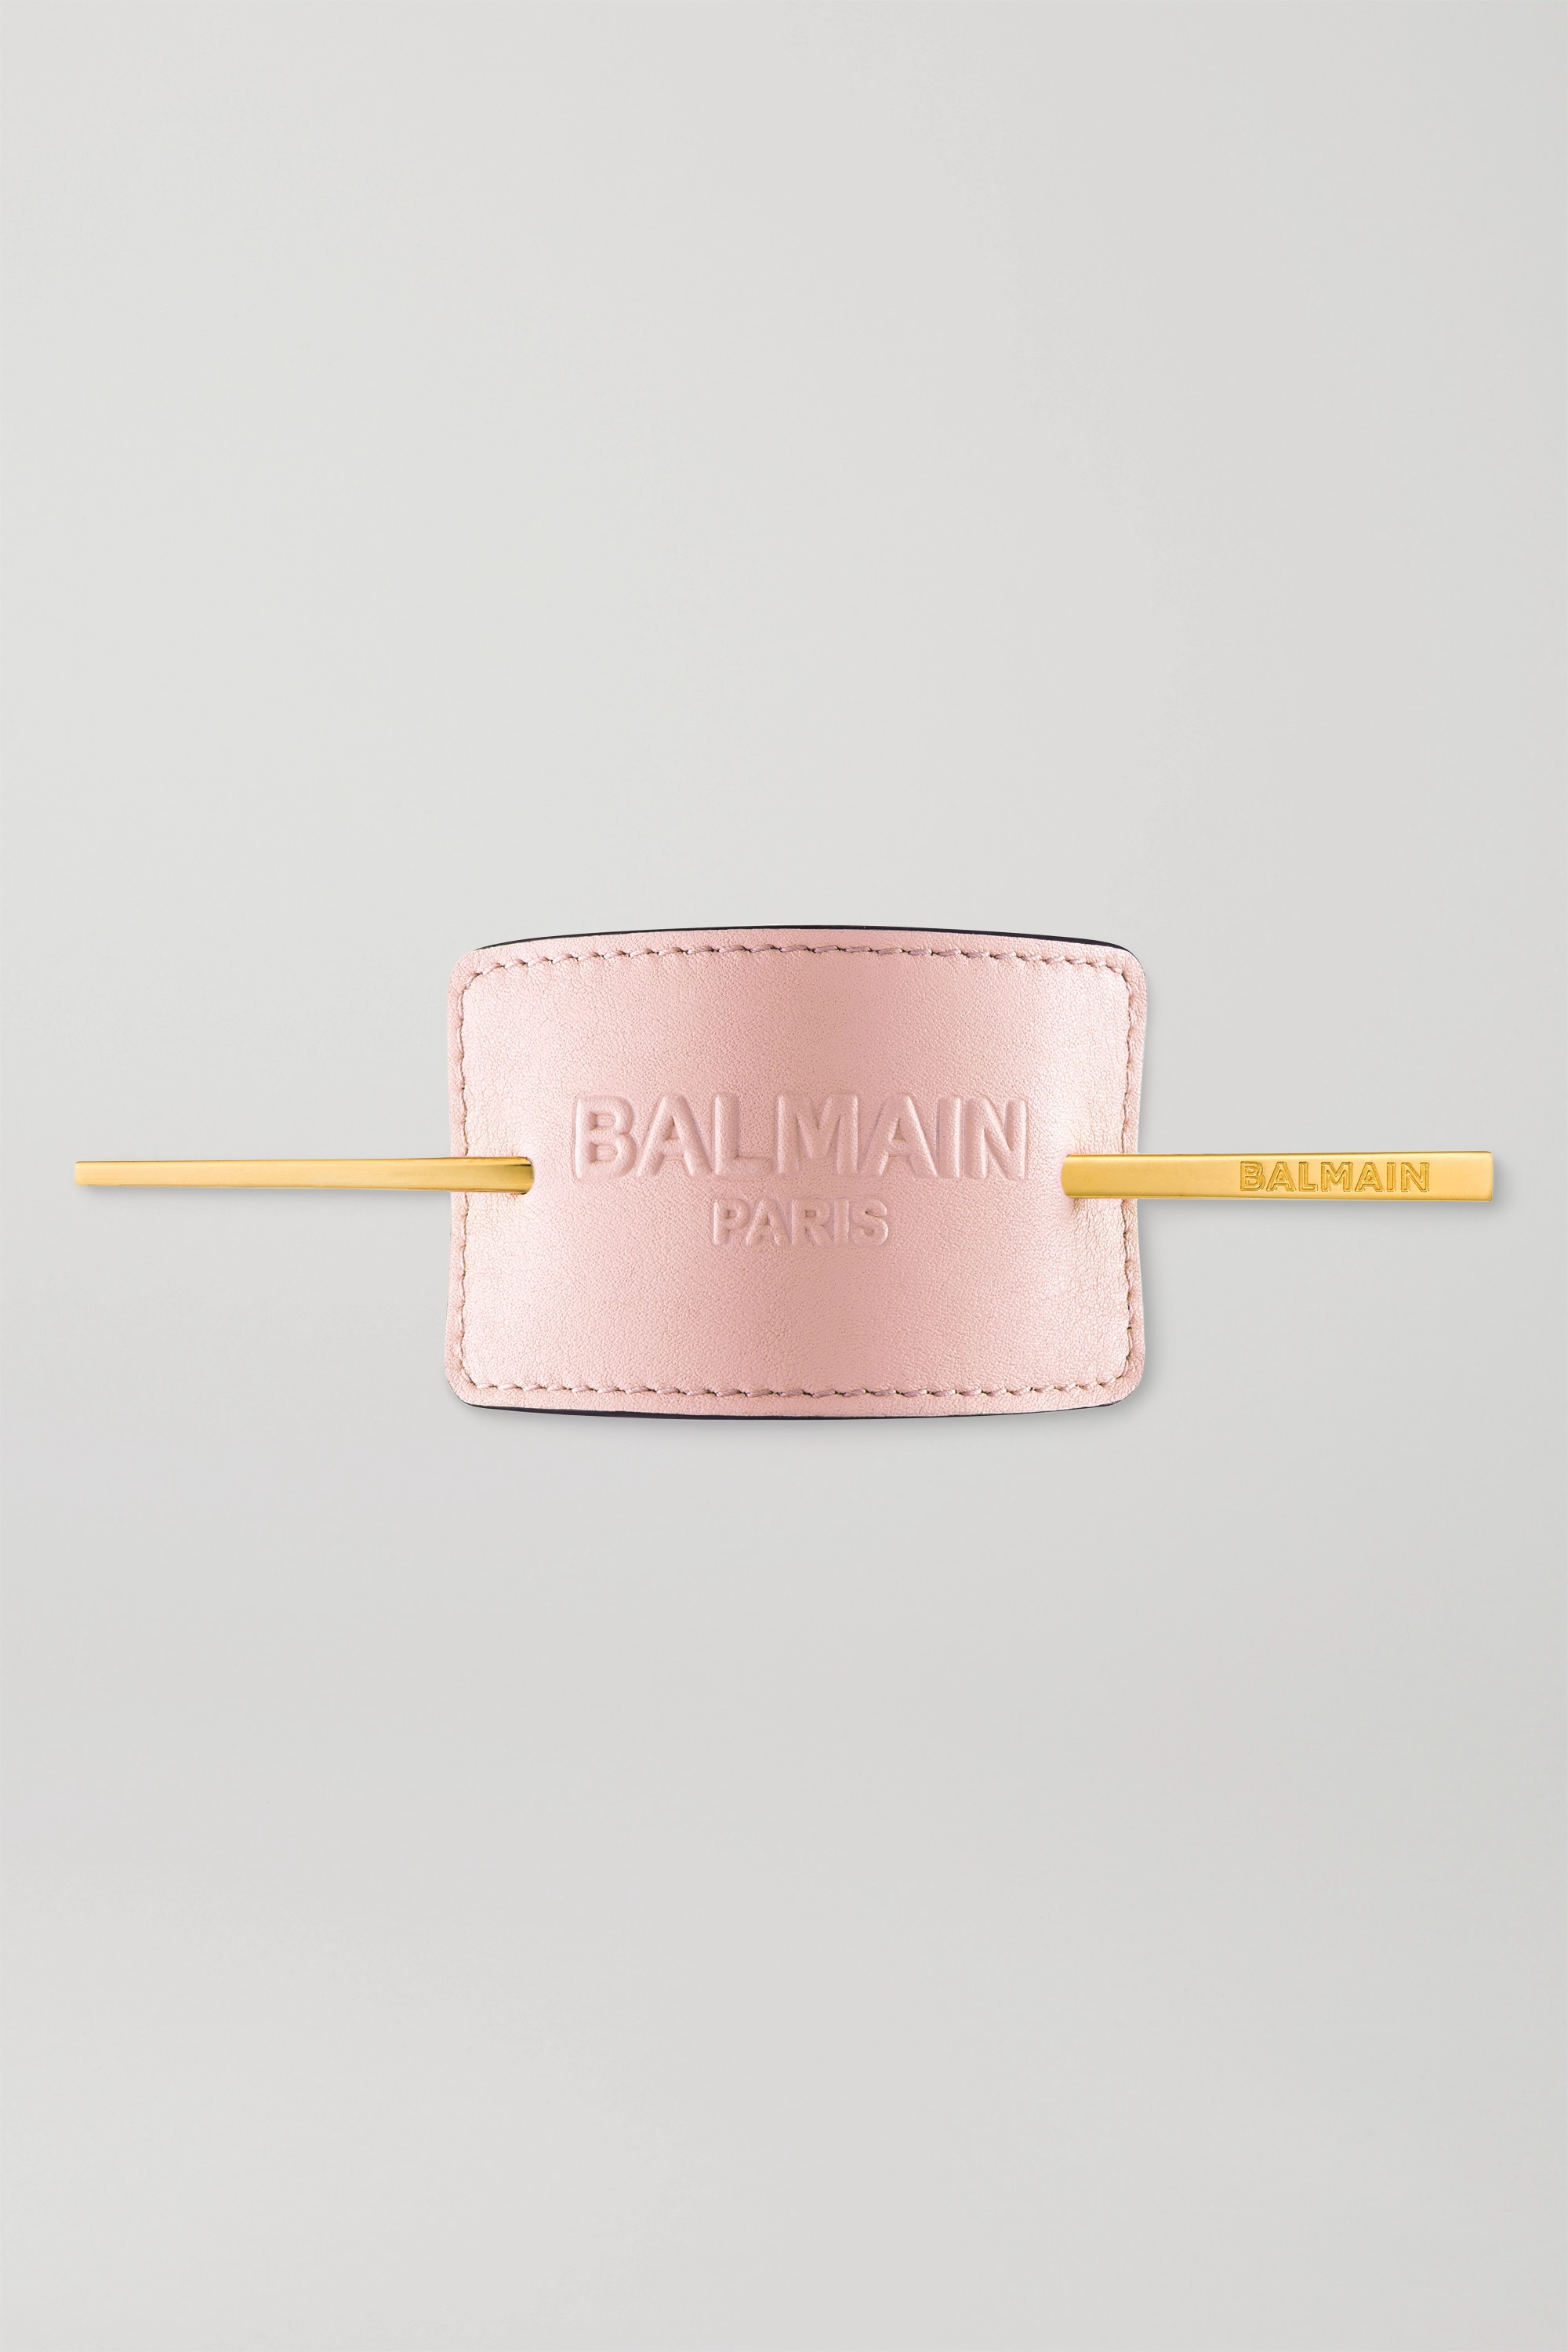 Balmain Paris Hair Couture Gold-plated And Embossed Leather Hair Pin - Baby-pink In Baby Pink